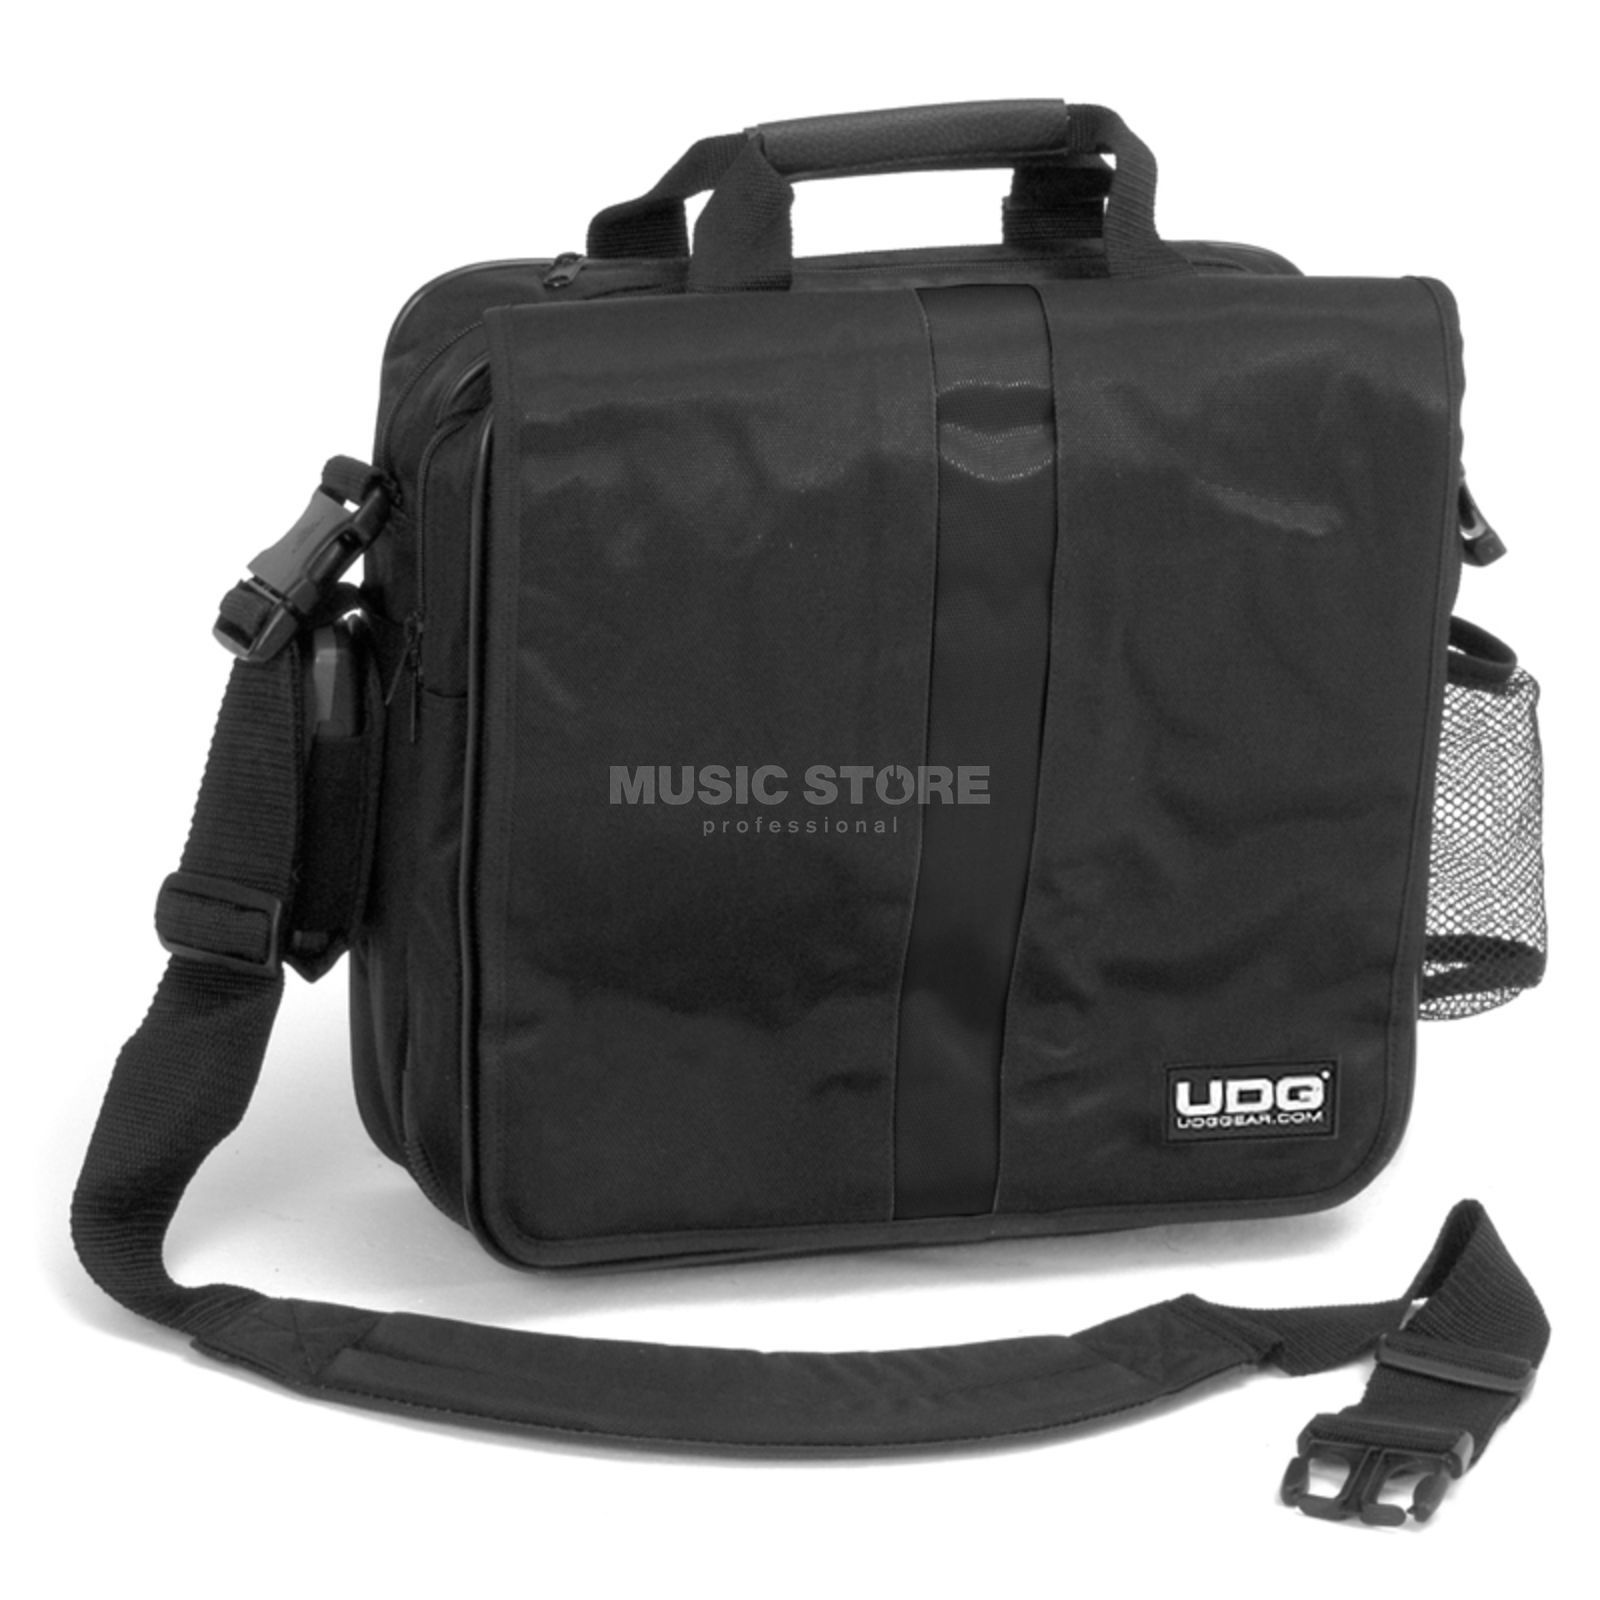 UDG UDG CourierBag Deluxe Black/ Orange (U9470BL/OR) Produktbild